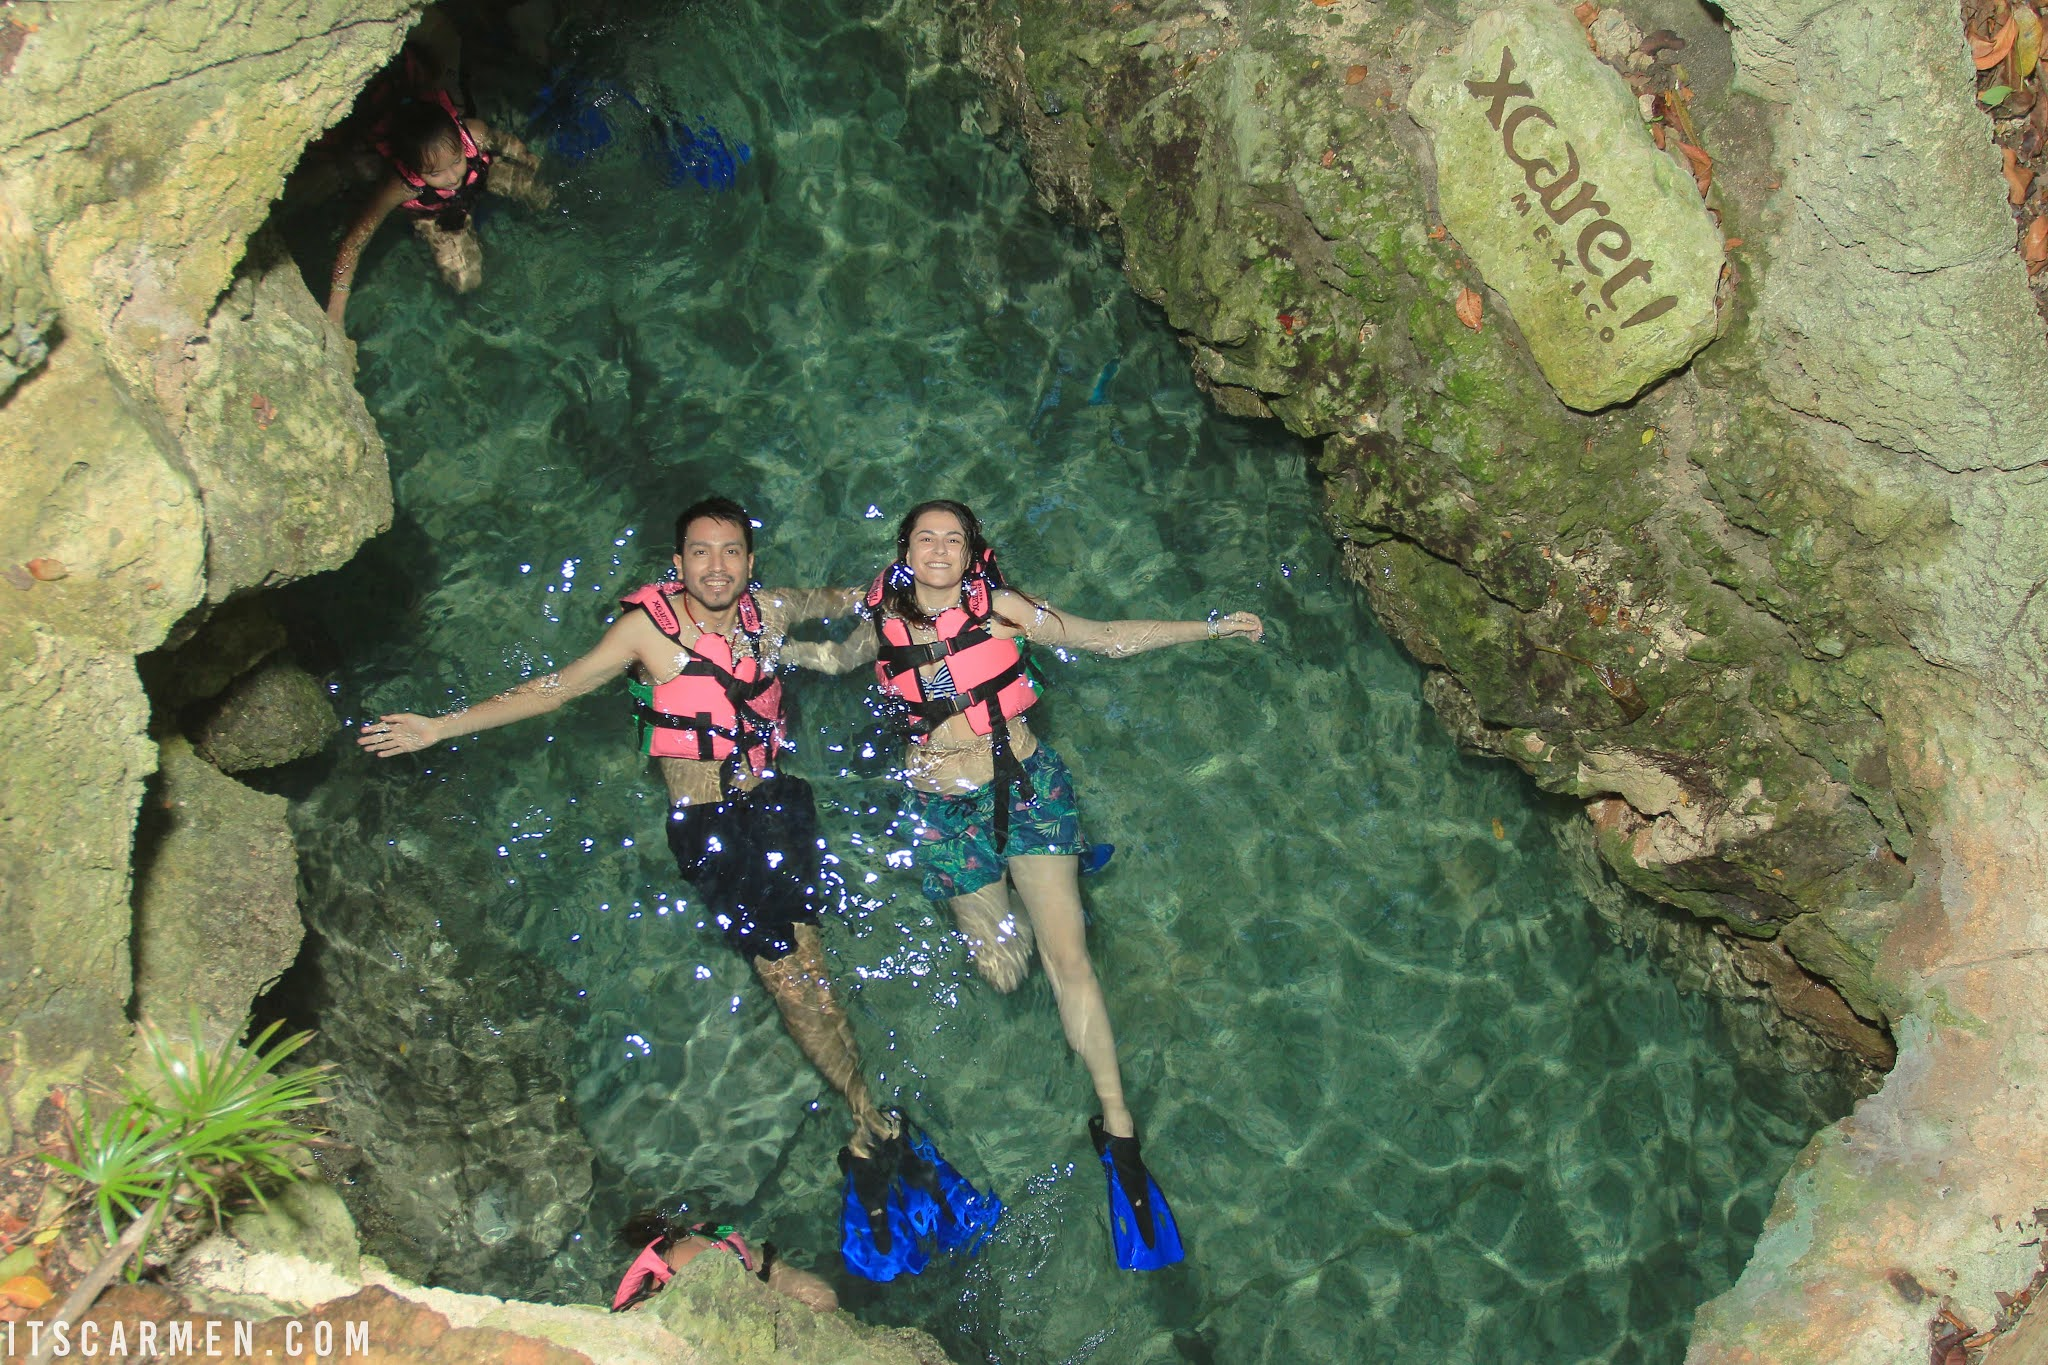 The Xcaret Underground River Experience: Things to do in Xcaret